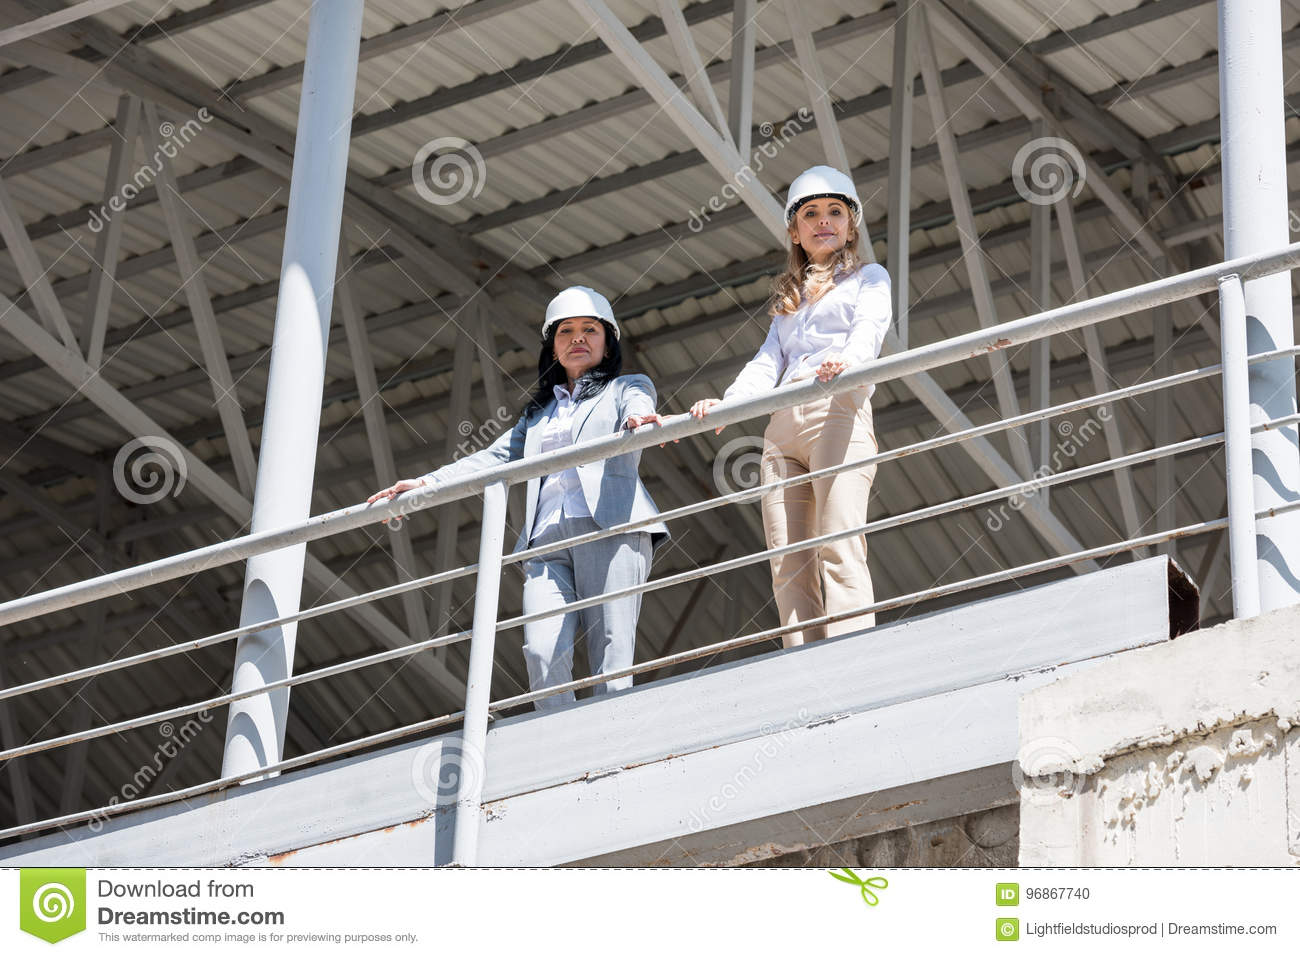 Architects in formal wear looking at camera while standing at construction site